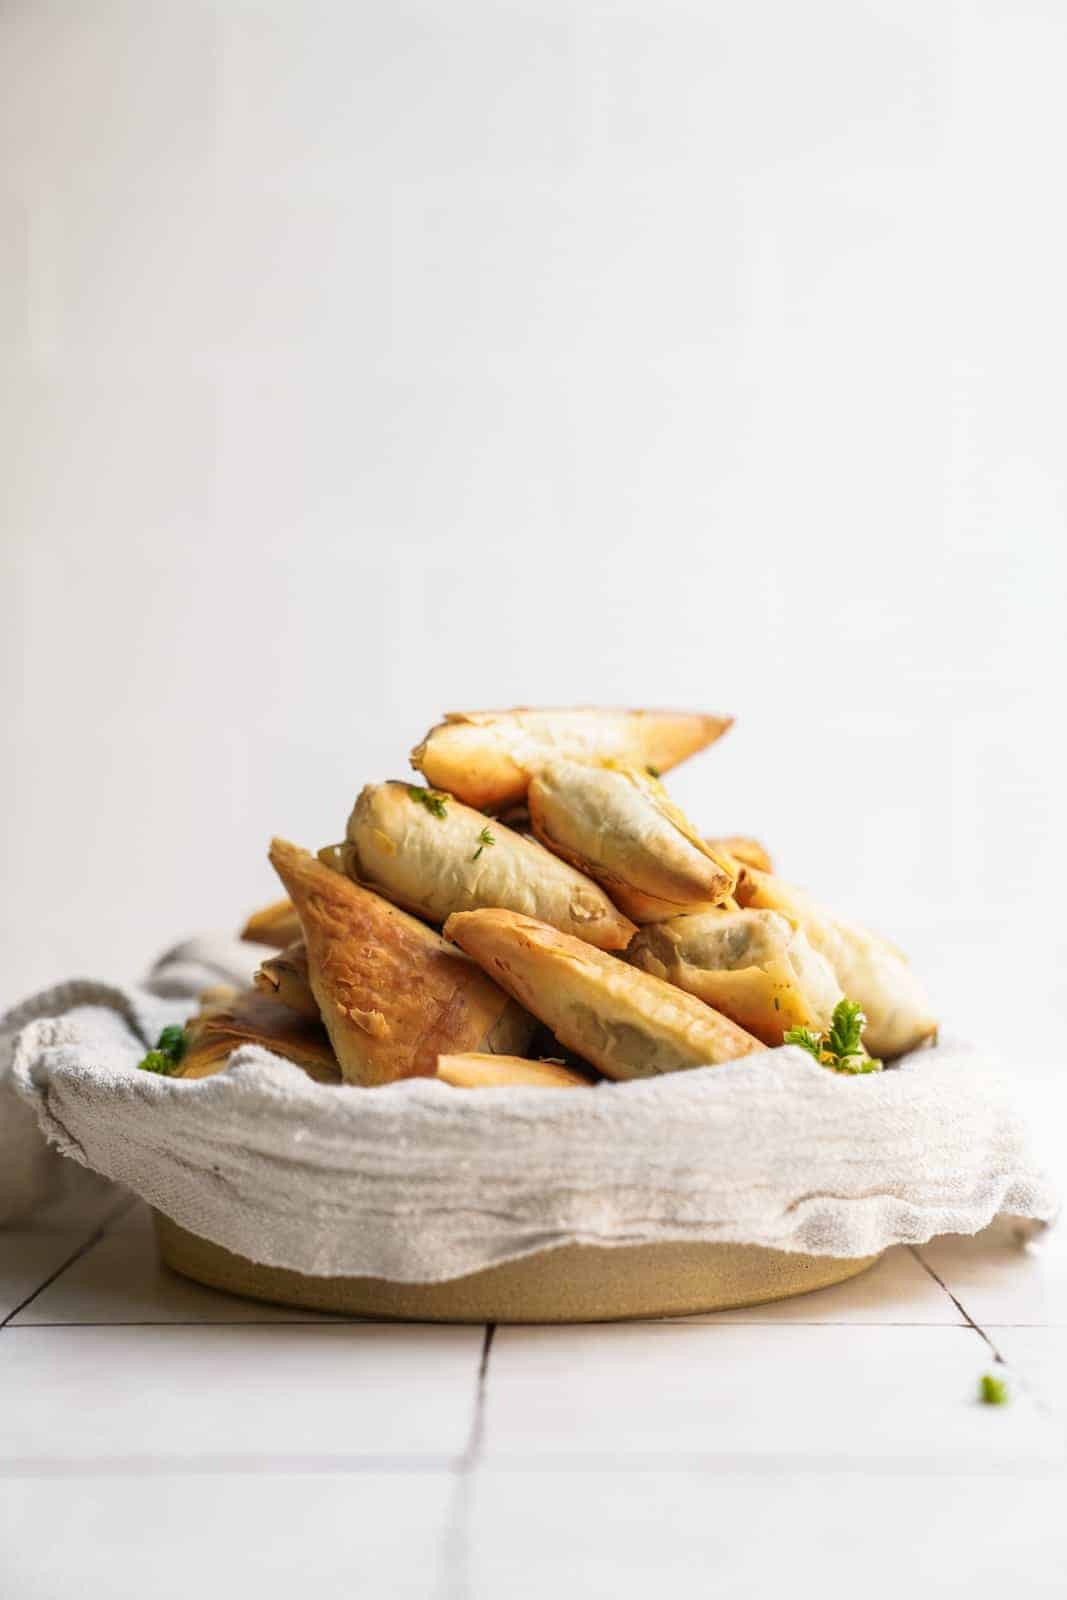 Serving dish of phyllo Creamy Mushroom Pastry bites on counter